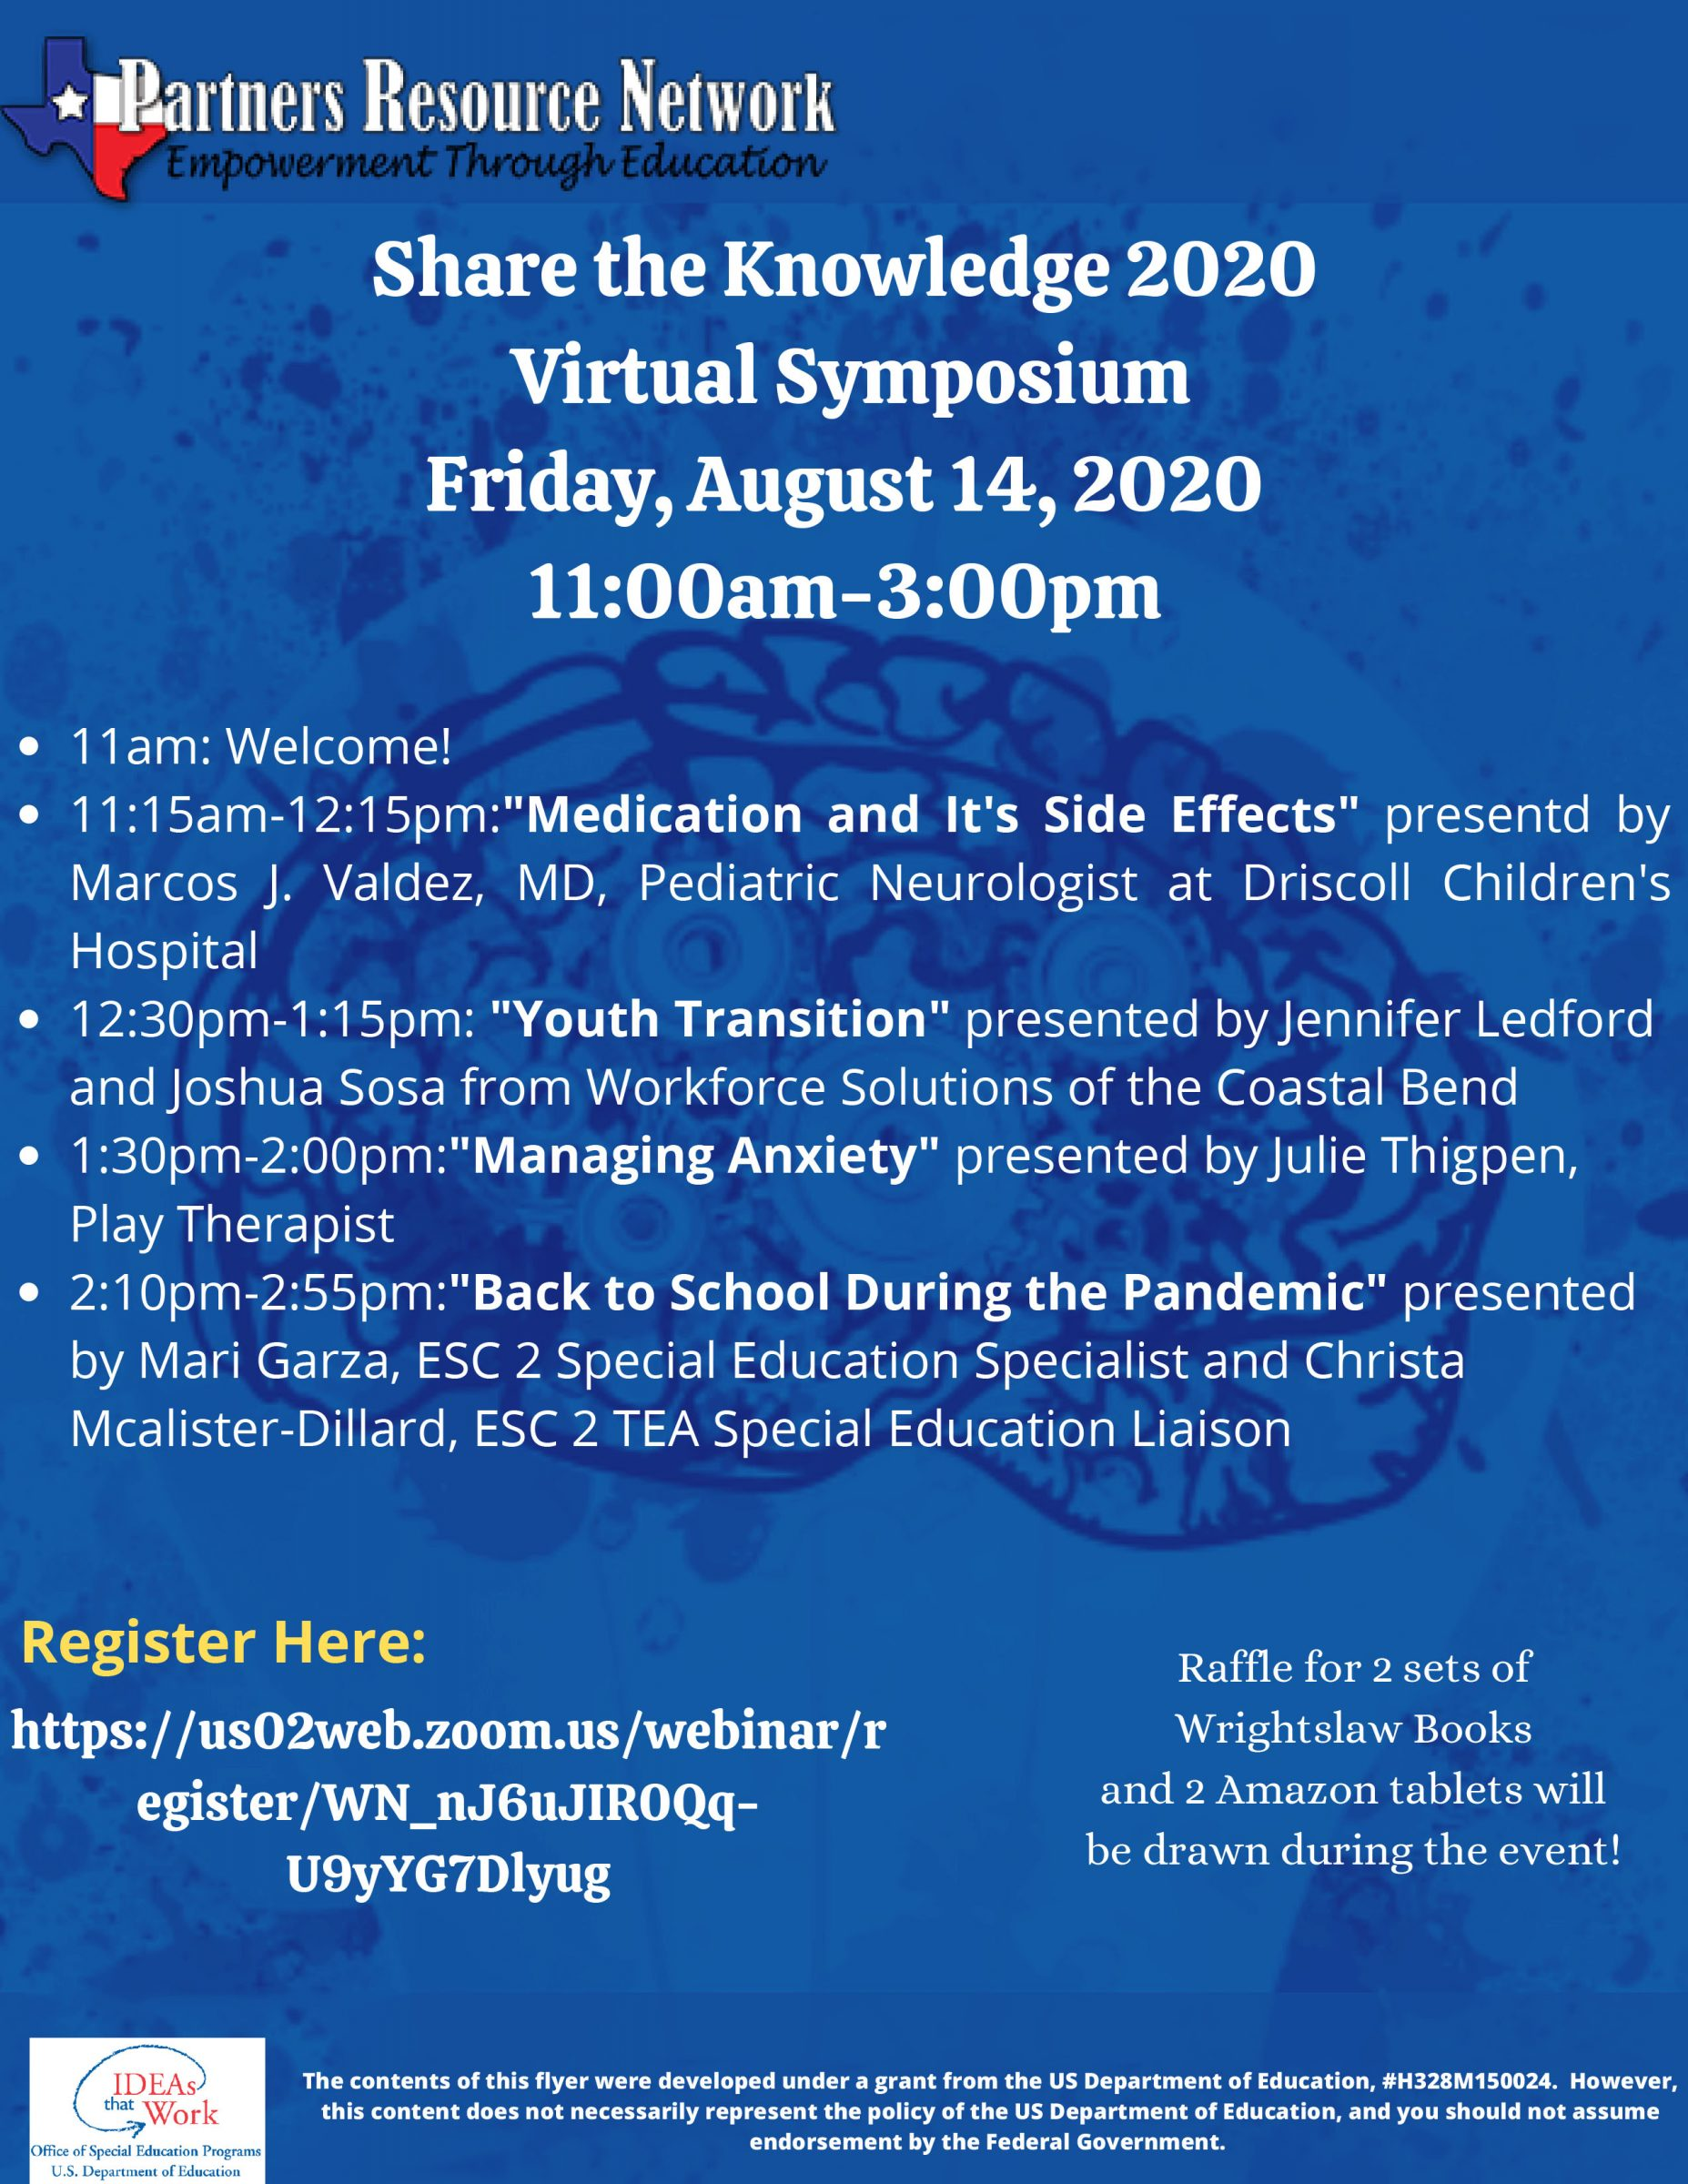 Share the Knowledge 2020 - Virtual Symposium Friday August 14, 2020 from 11:00 AM - 3:00 PM, Click Above to Register